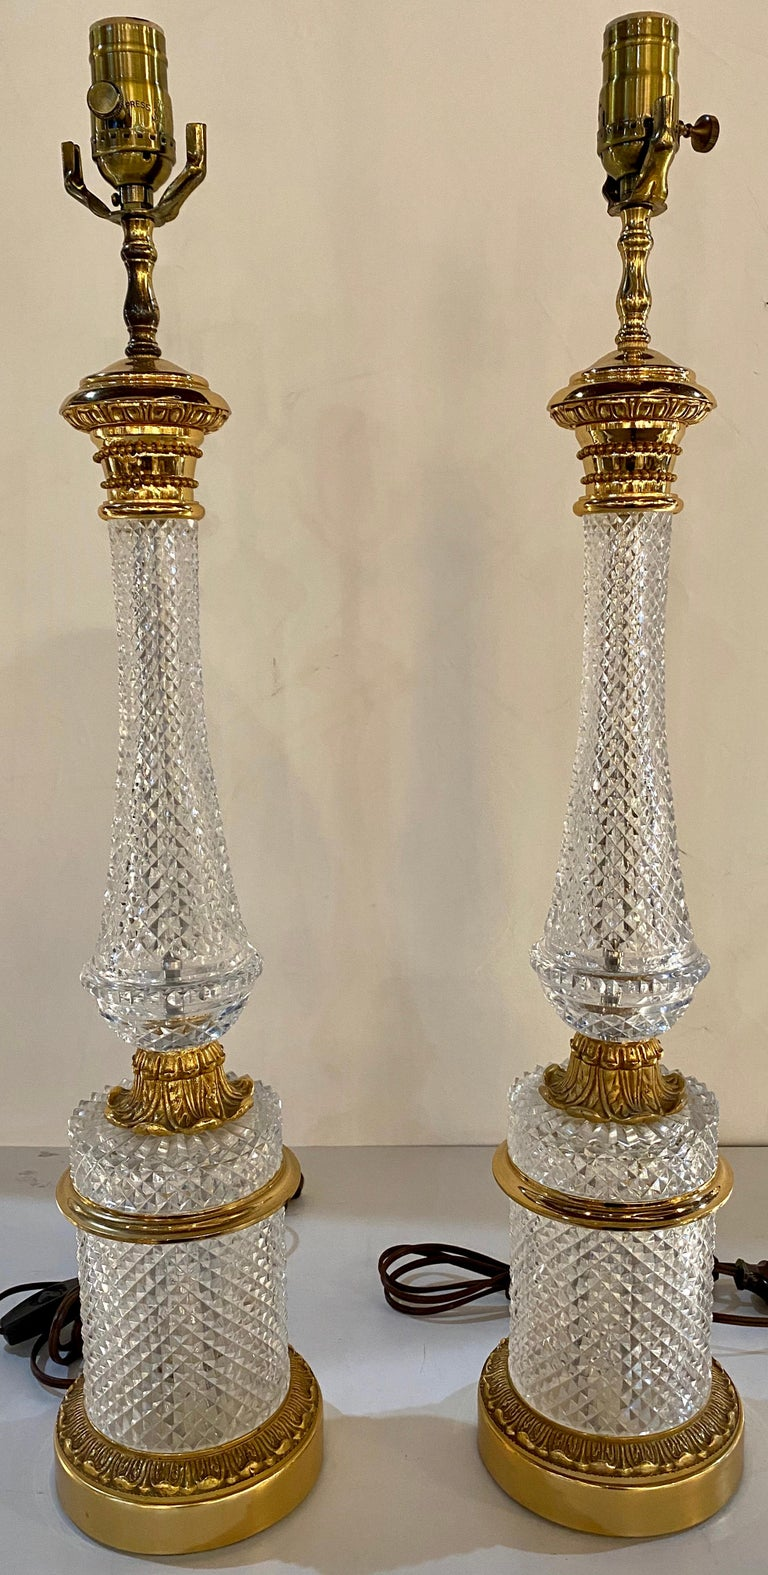 Pair of finely cut glass table lamps with bronze mounting Baccarat style. These column-form lamps do not have harps or shades.